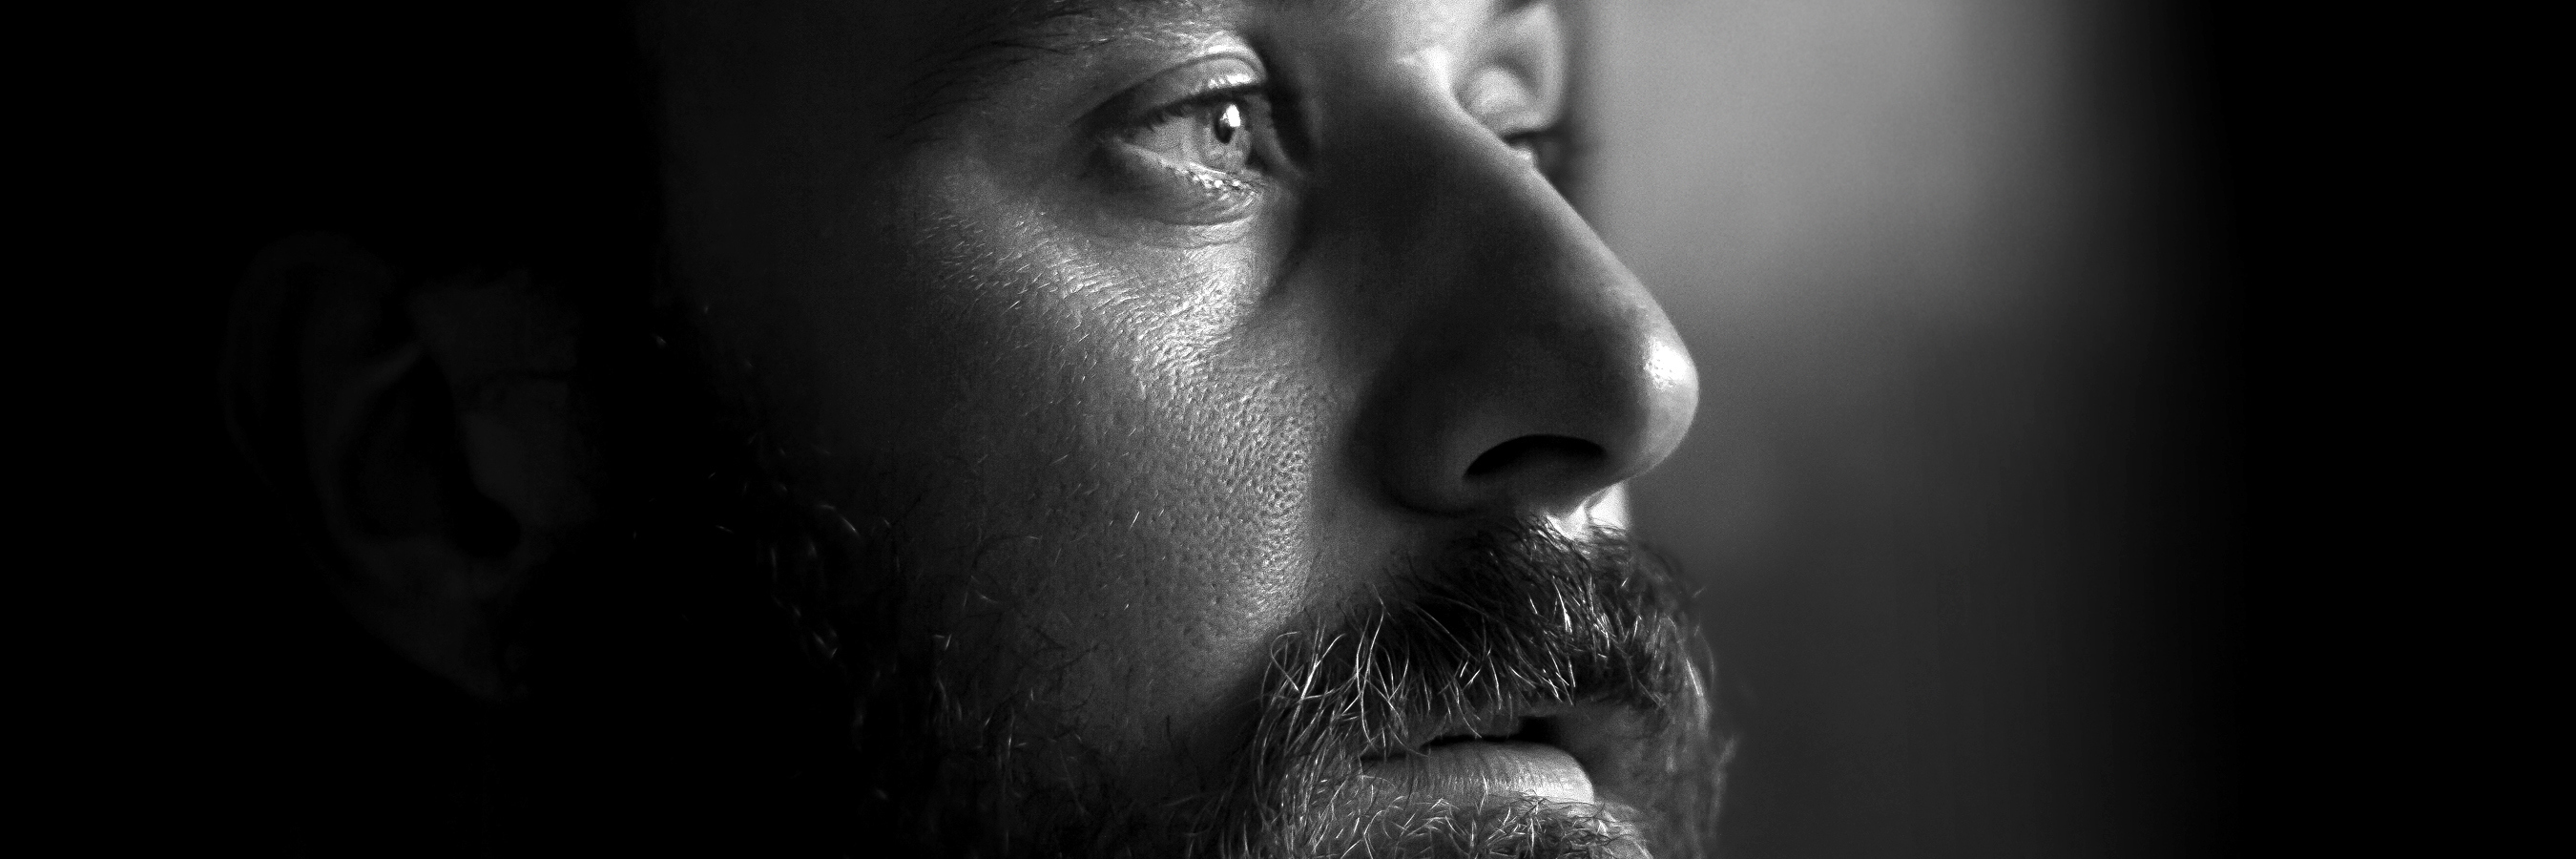 Close-up photo of a serious man with a beard in profile. Black and white image with shallow depth